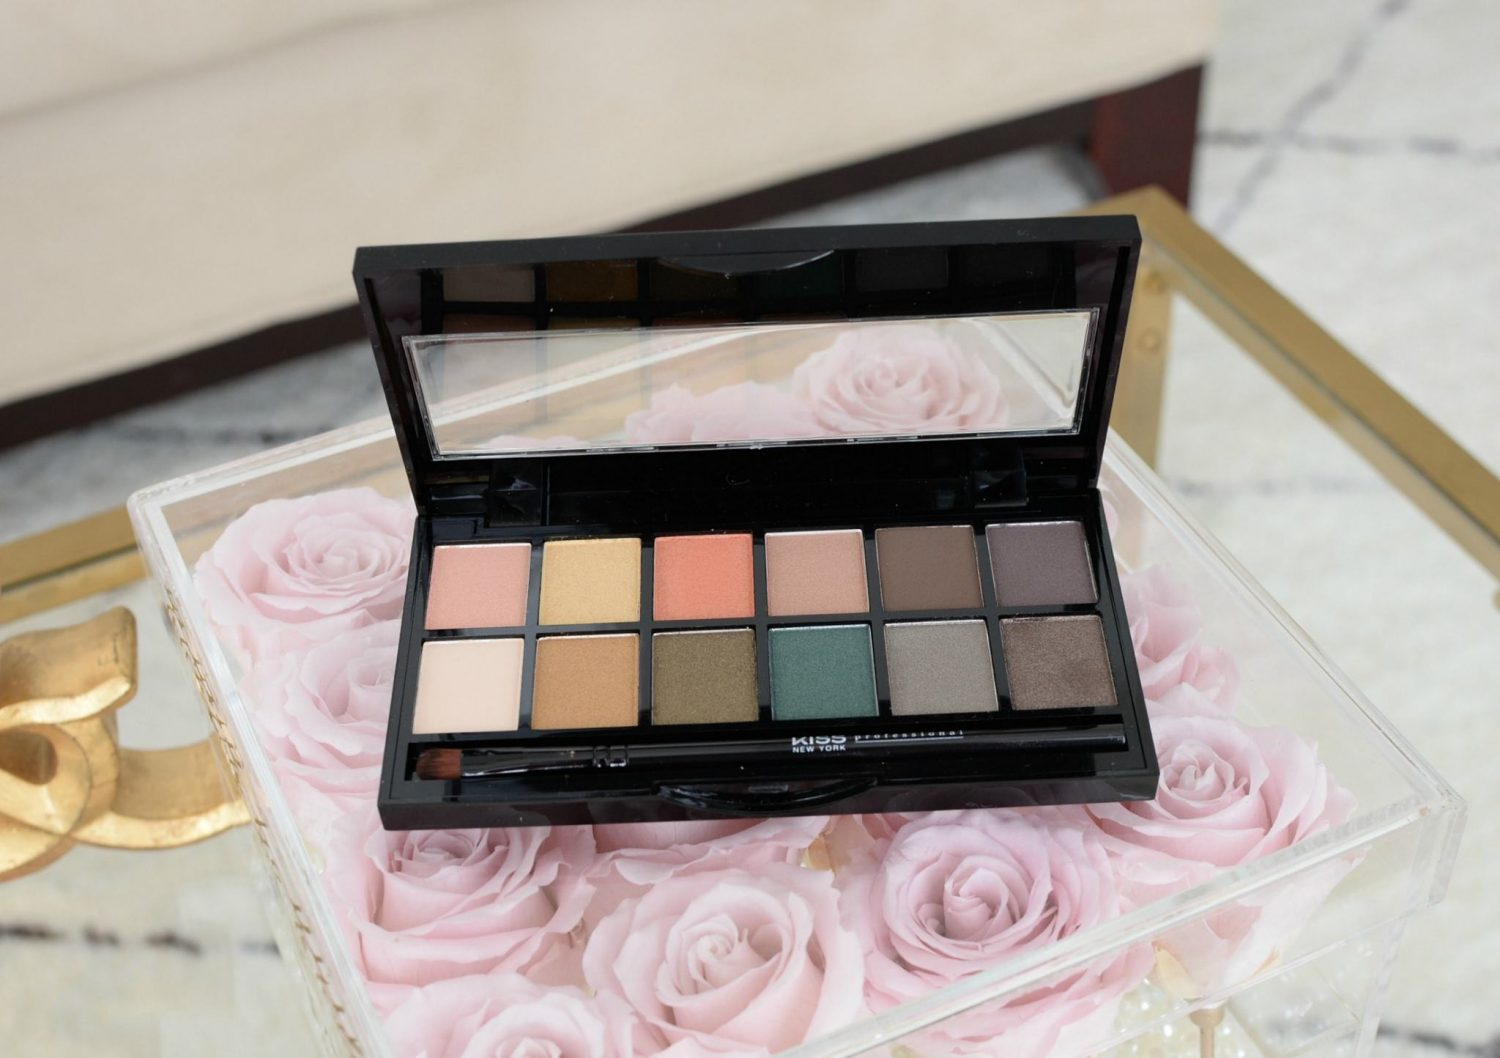 Kiss NY Professional Goddess Eyeshadow Palette | The Pink Millennial